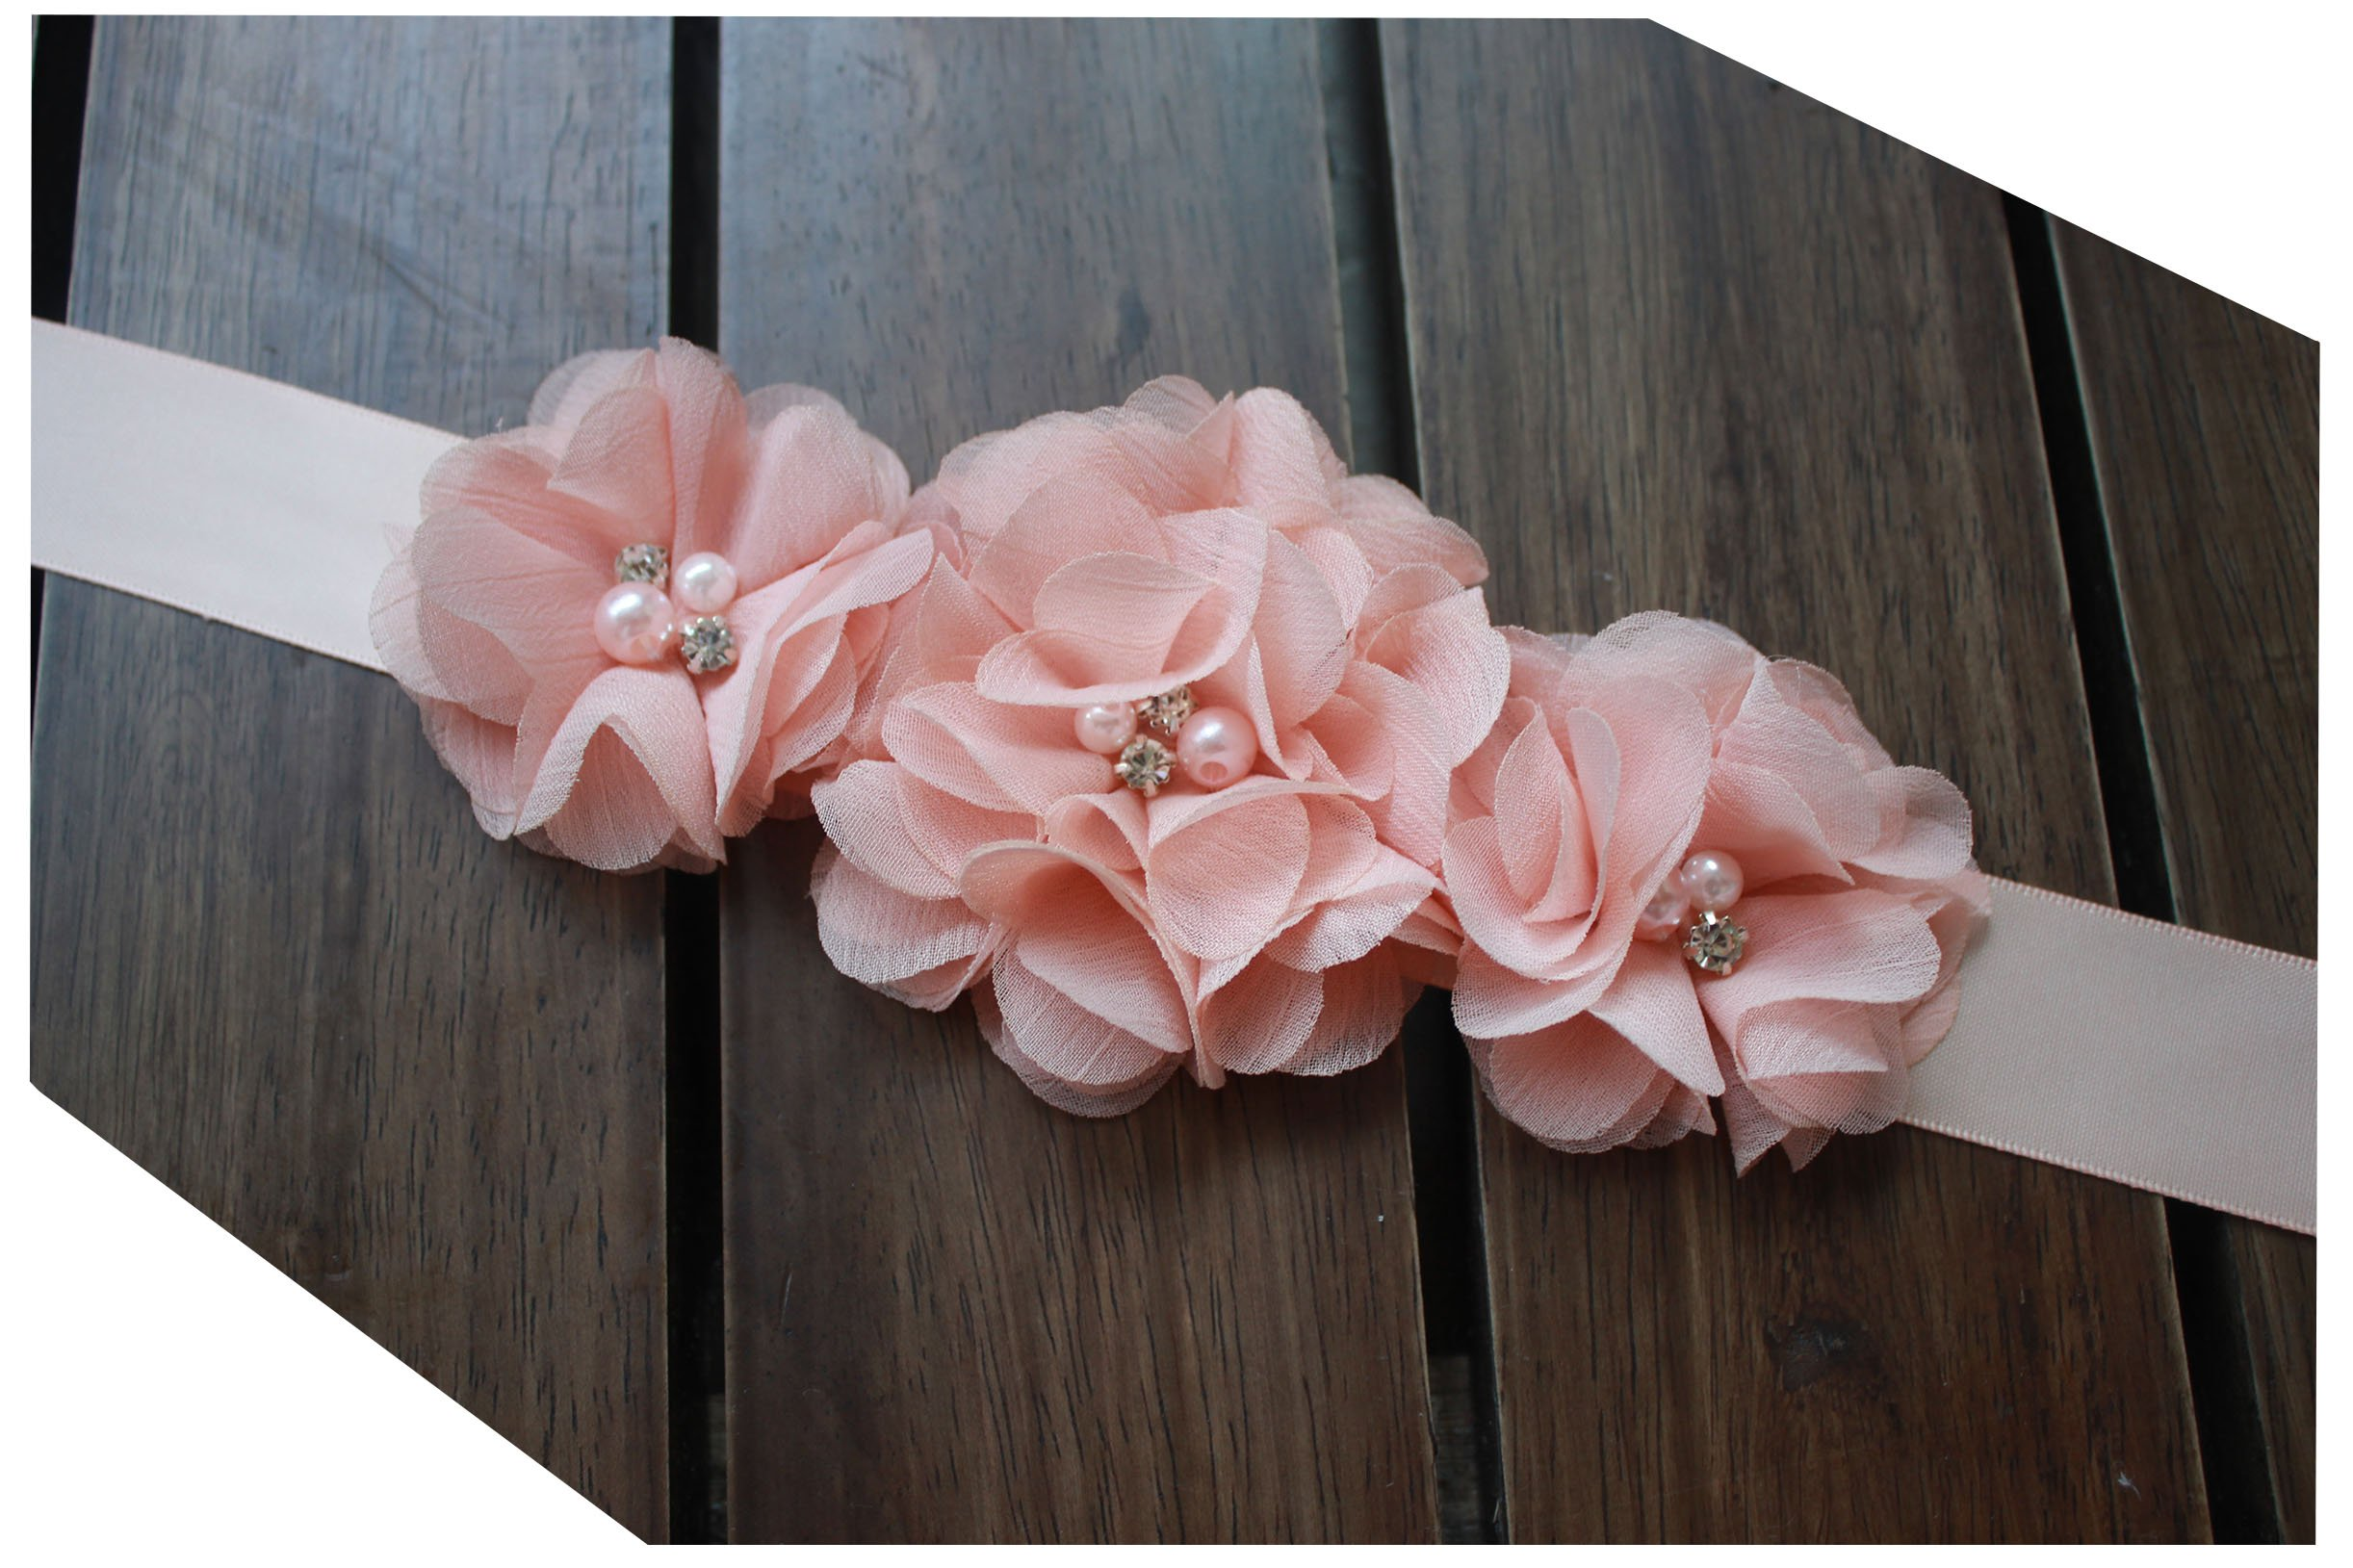 Bridesmaid and Flowergirls sashes wedding sash pearls flowers belts (Peach)